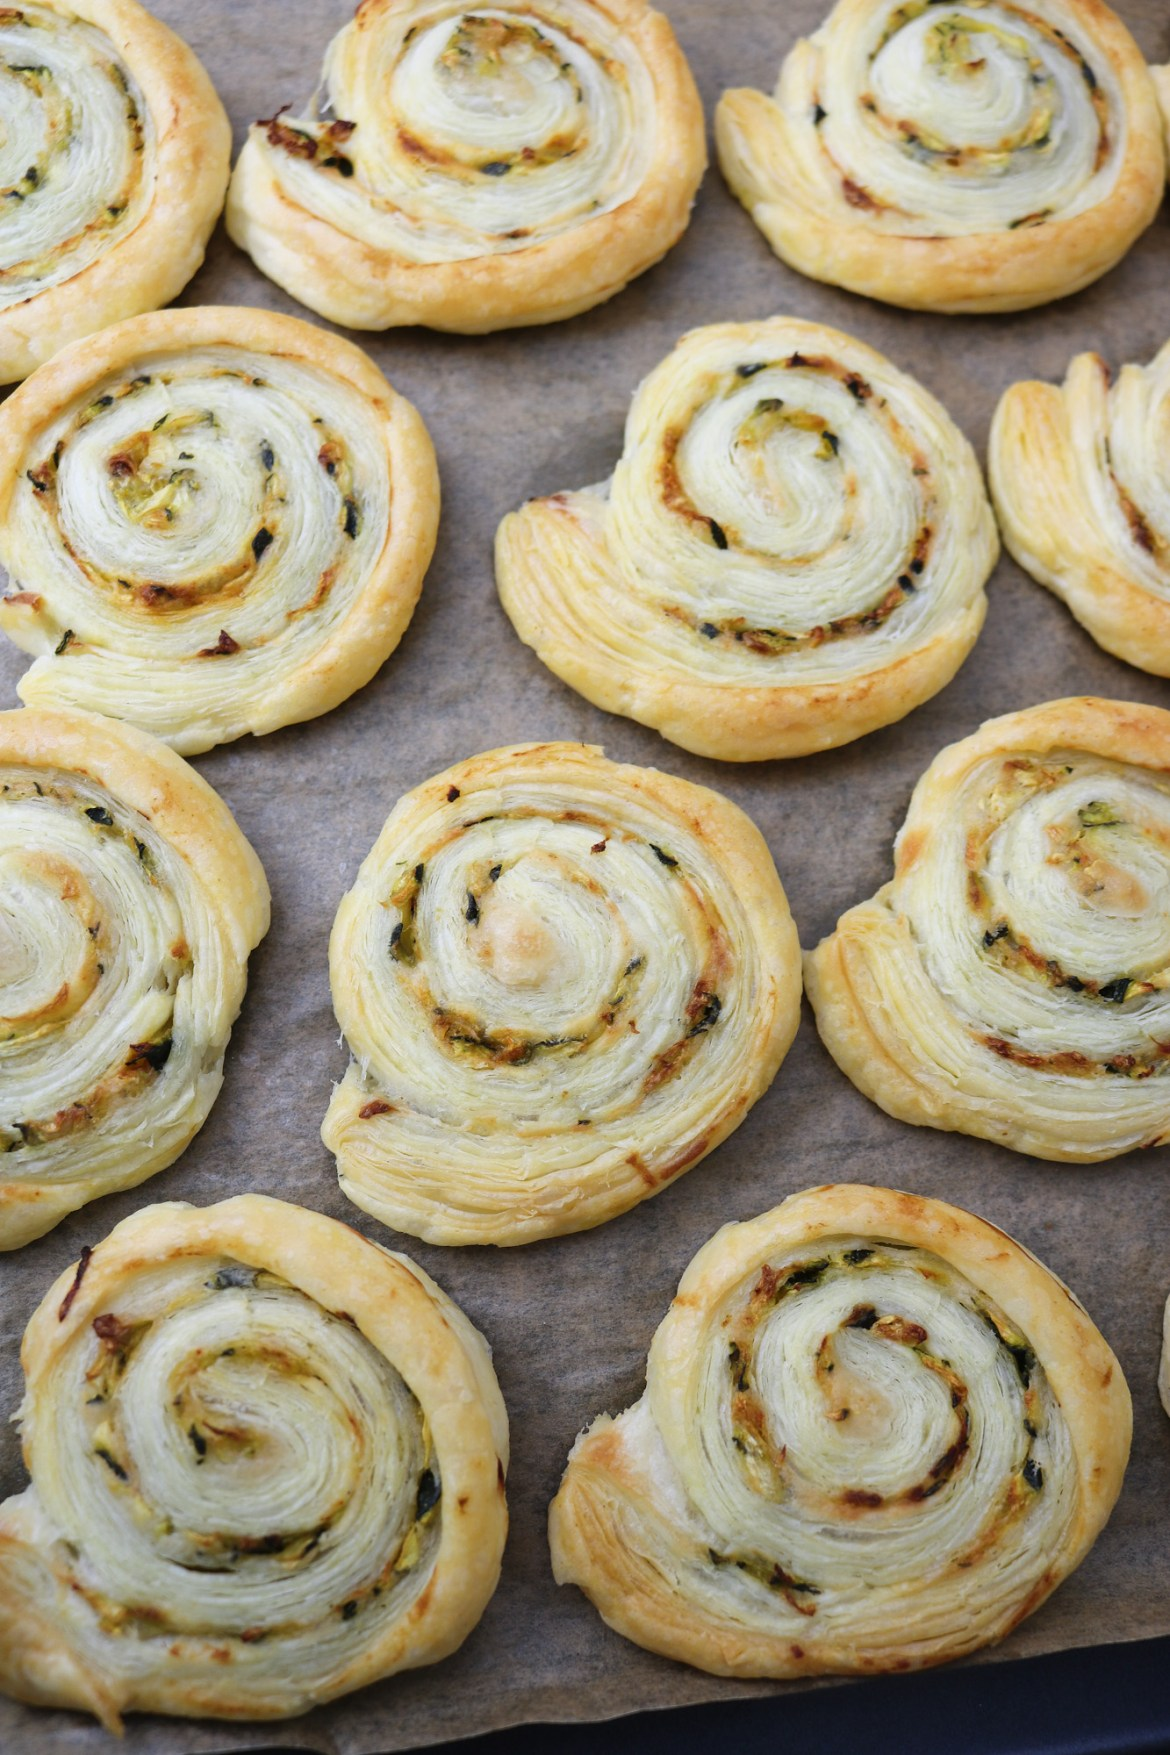 vegan courgette and smoked paprika pastry rolls on tray after bake